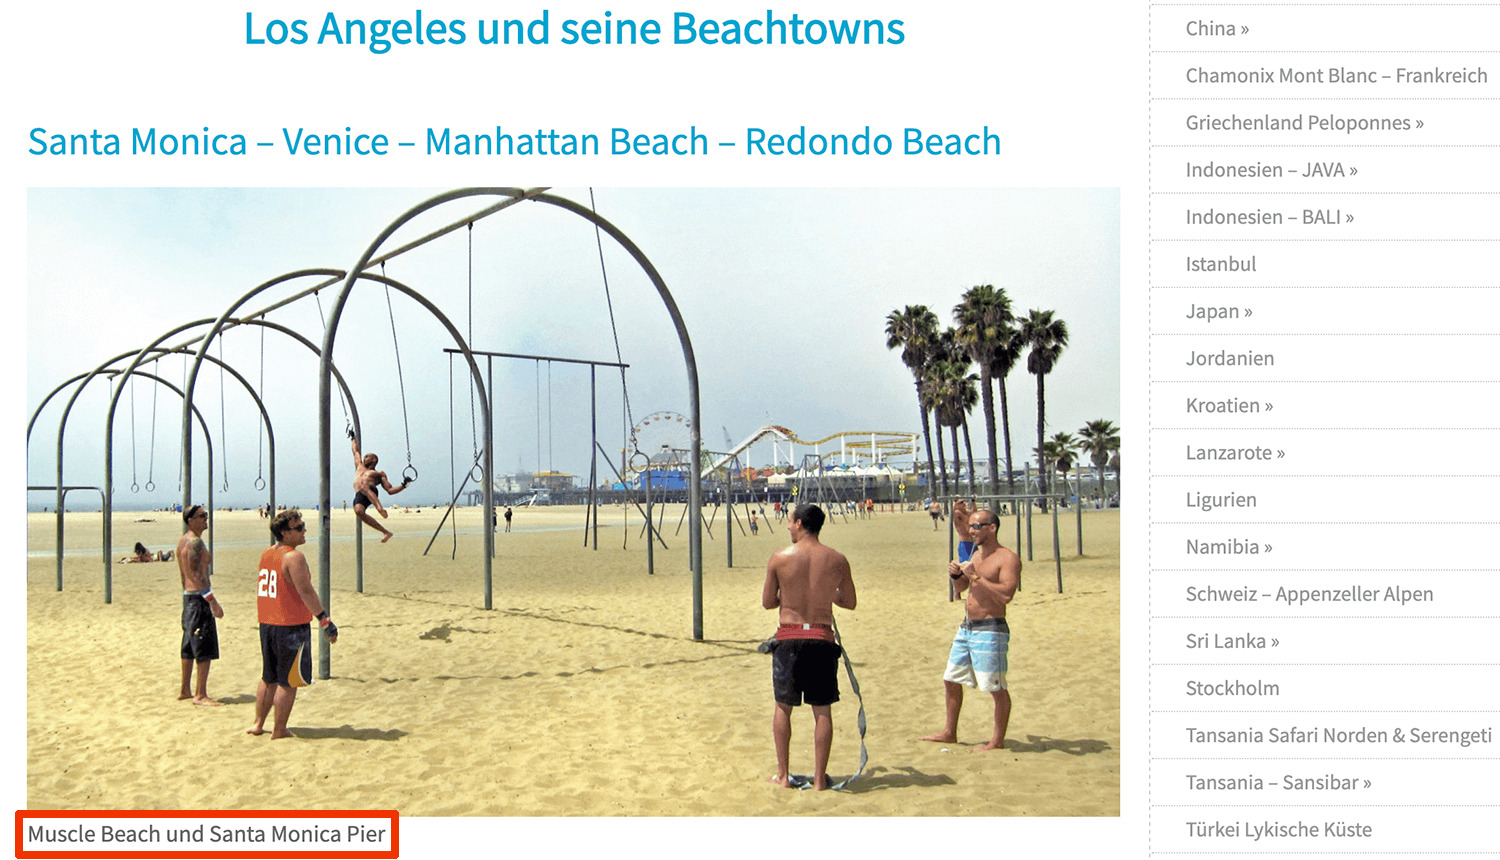 Screenshot eines Bildes mit Sportler am Muscle Beach